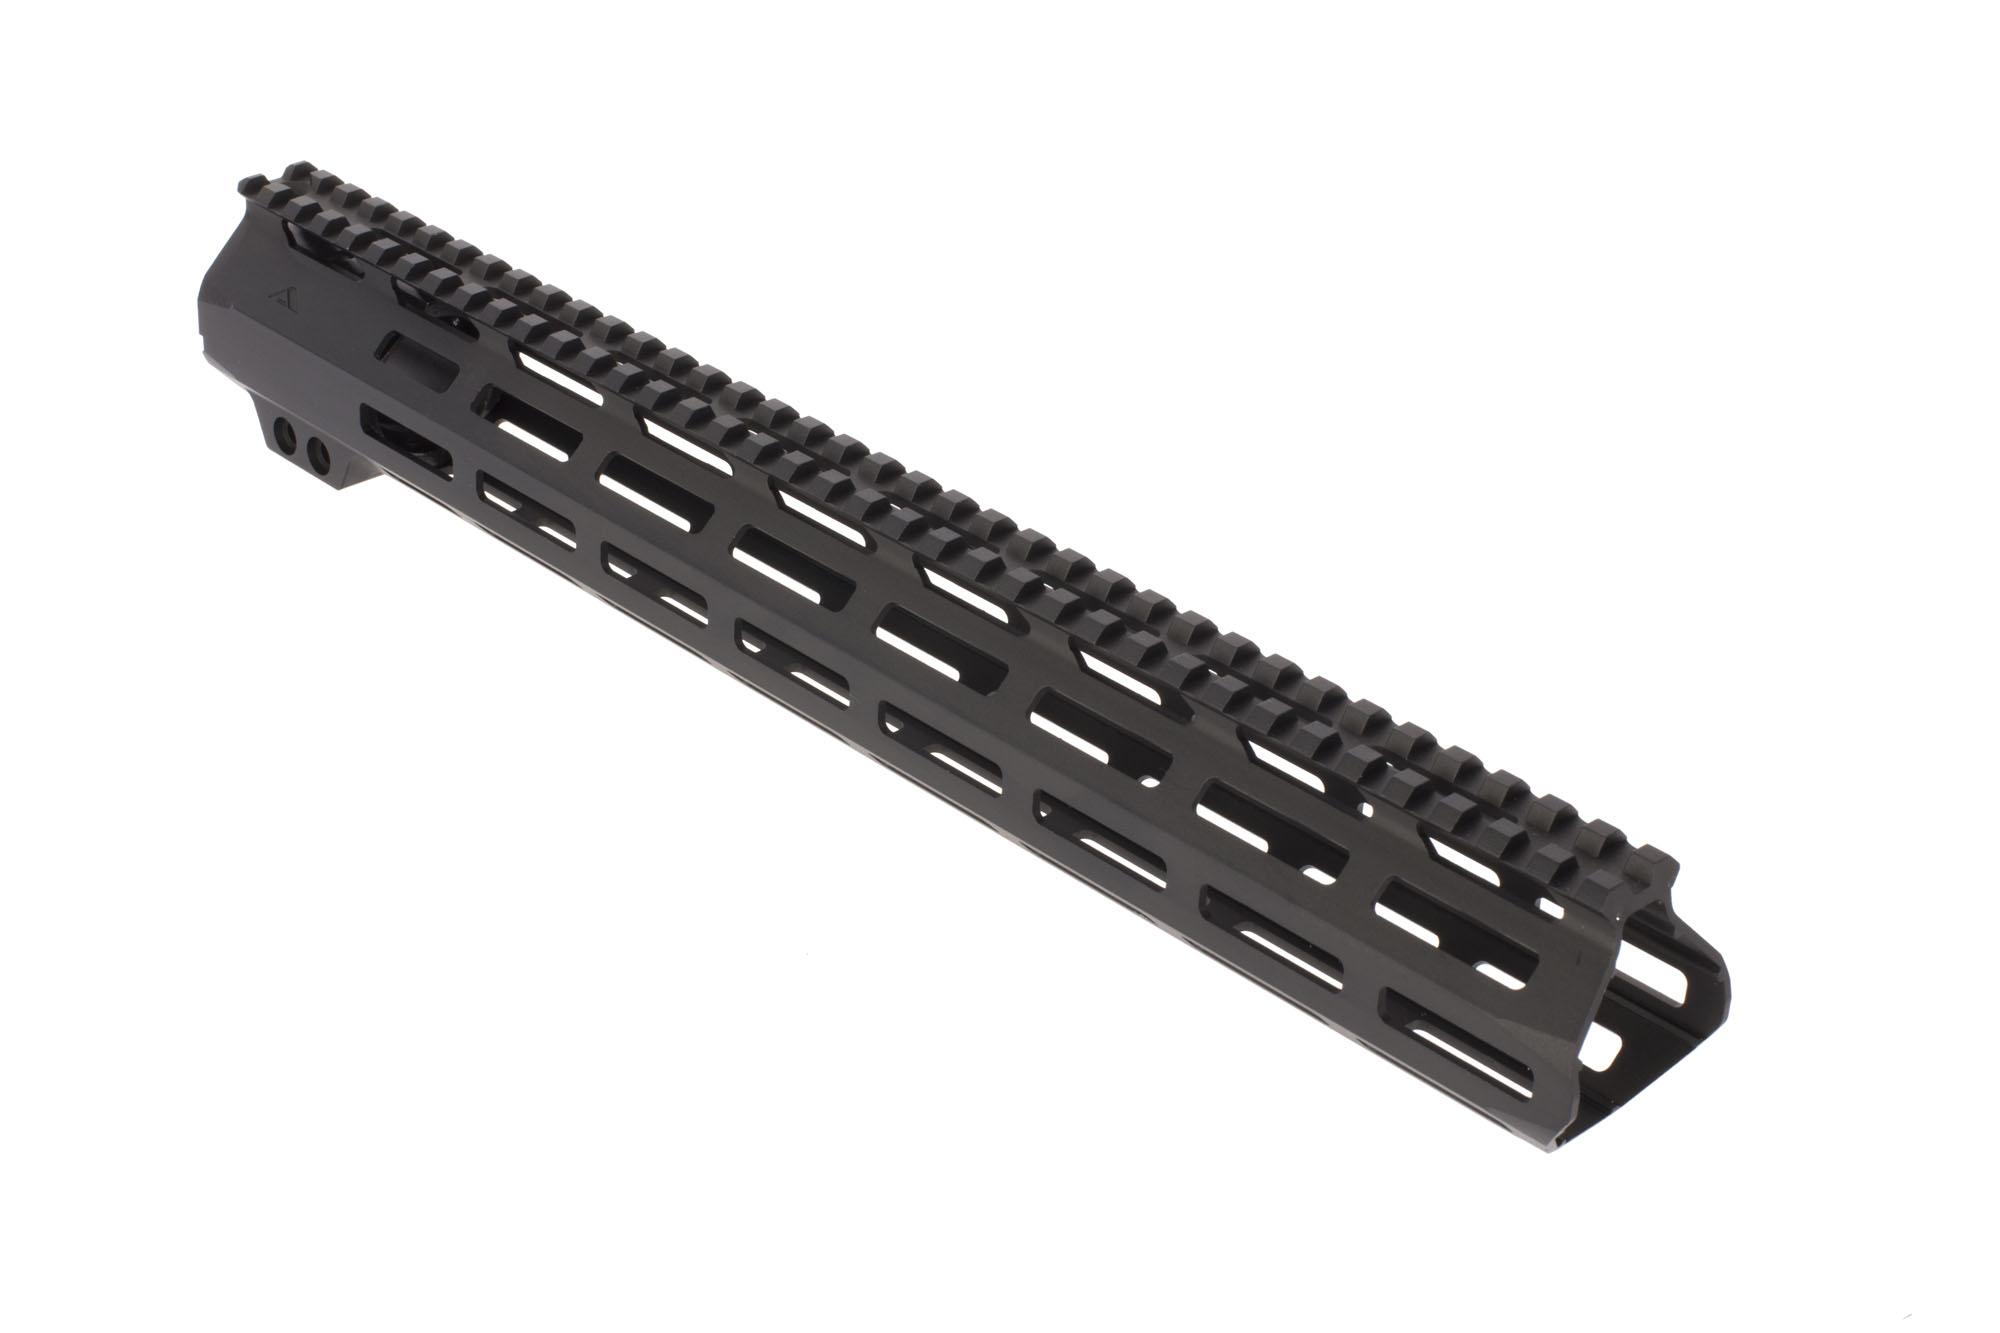 AimSports 15 AR-308 Free Float Handguard for DPMS Low Profile Receivers